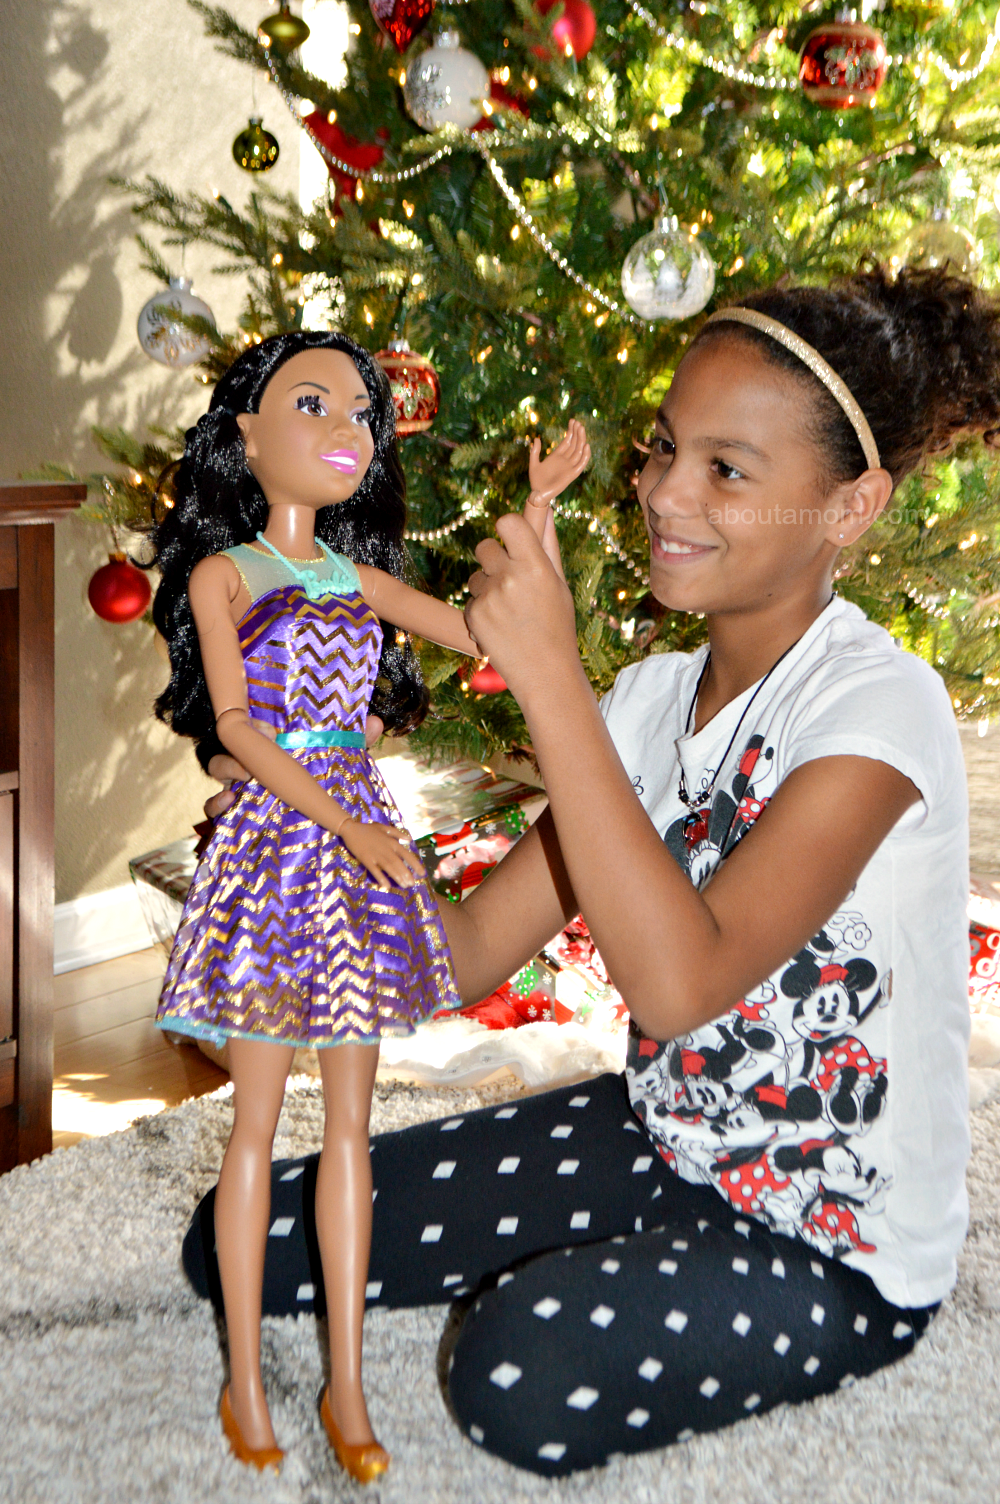 "Barbie Flip & Reveal Deluxe Styling Head and the Barbie 28"" Doll are two of the hottest Barbie toys this holiday season! Give the your kids the joy of Barbie and other Mattel toys from Walmart."